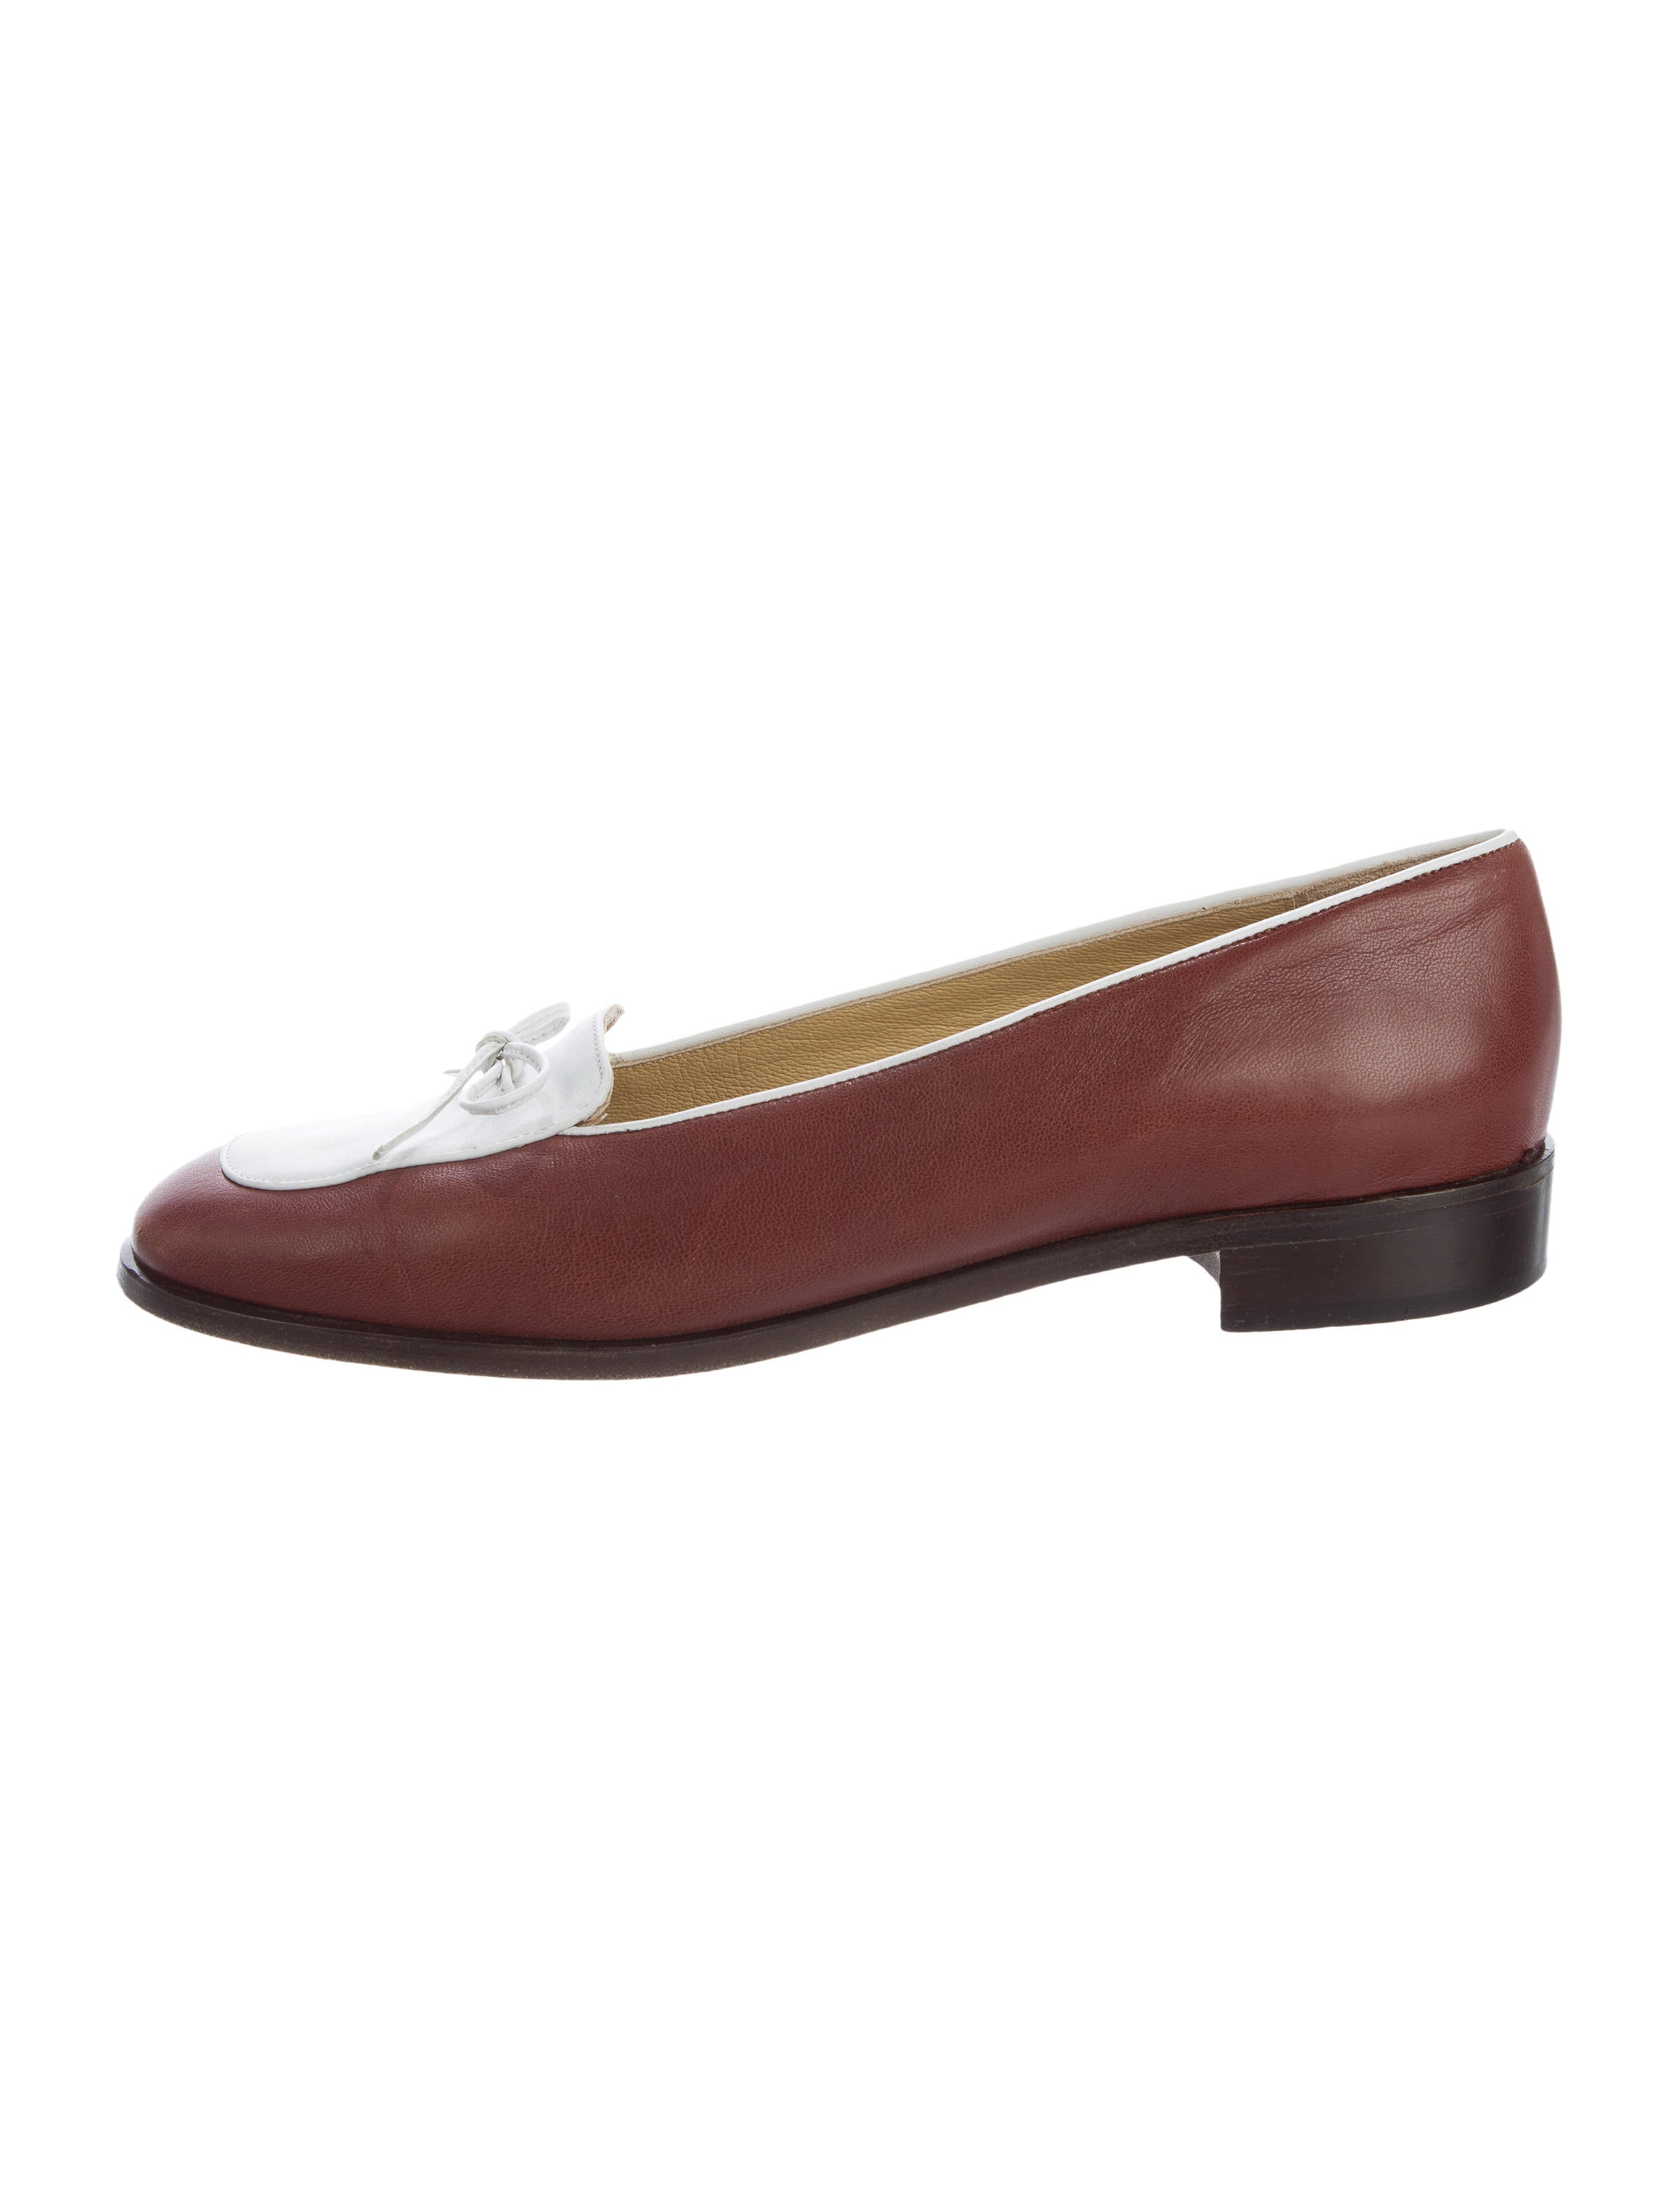 bdbc6e9c05cce Yves Saint Laurent Bicolor Leather Loafers - Shoes - YVE52963 | The ...